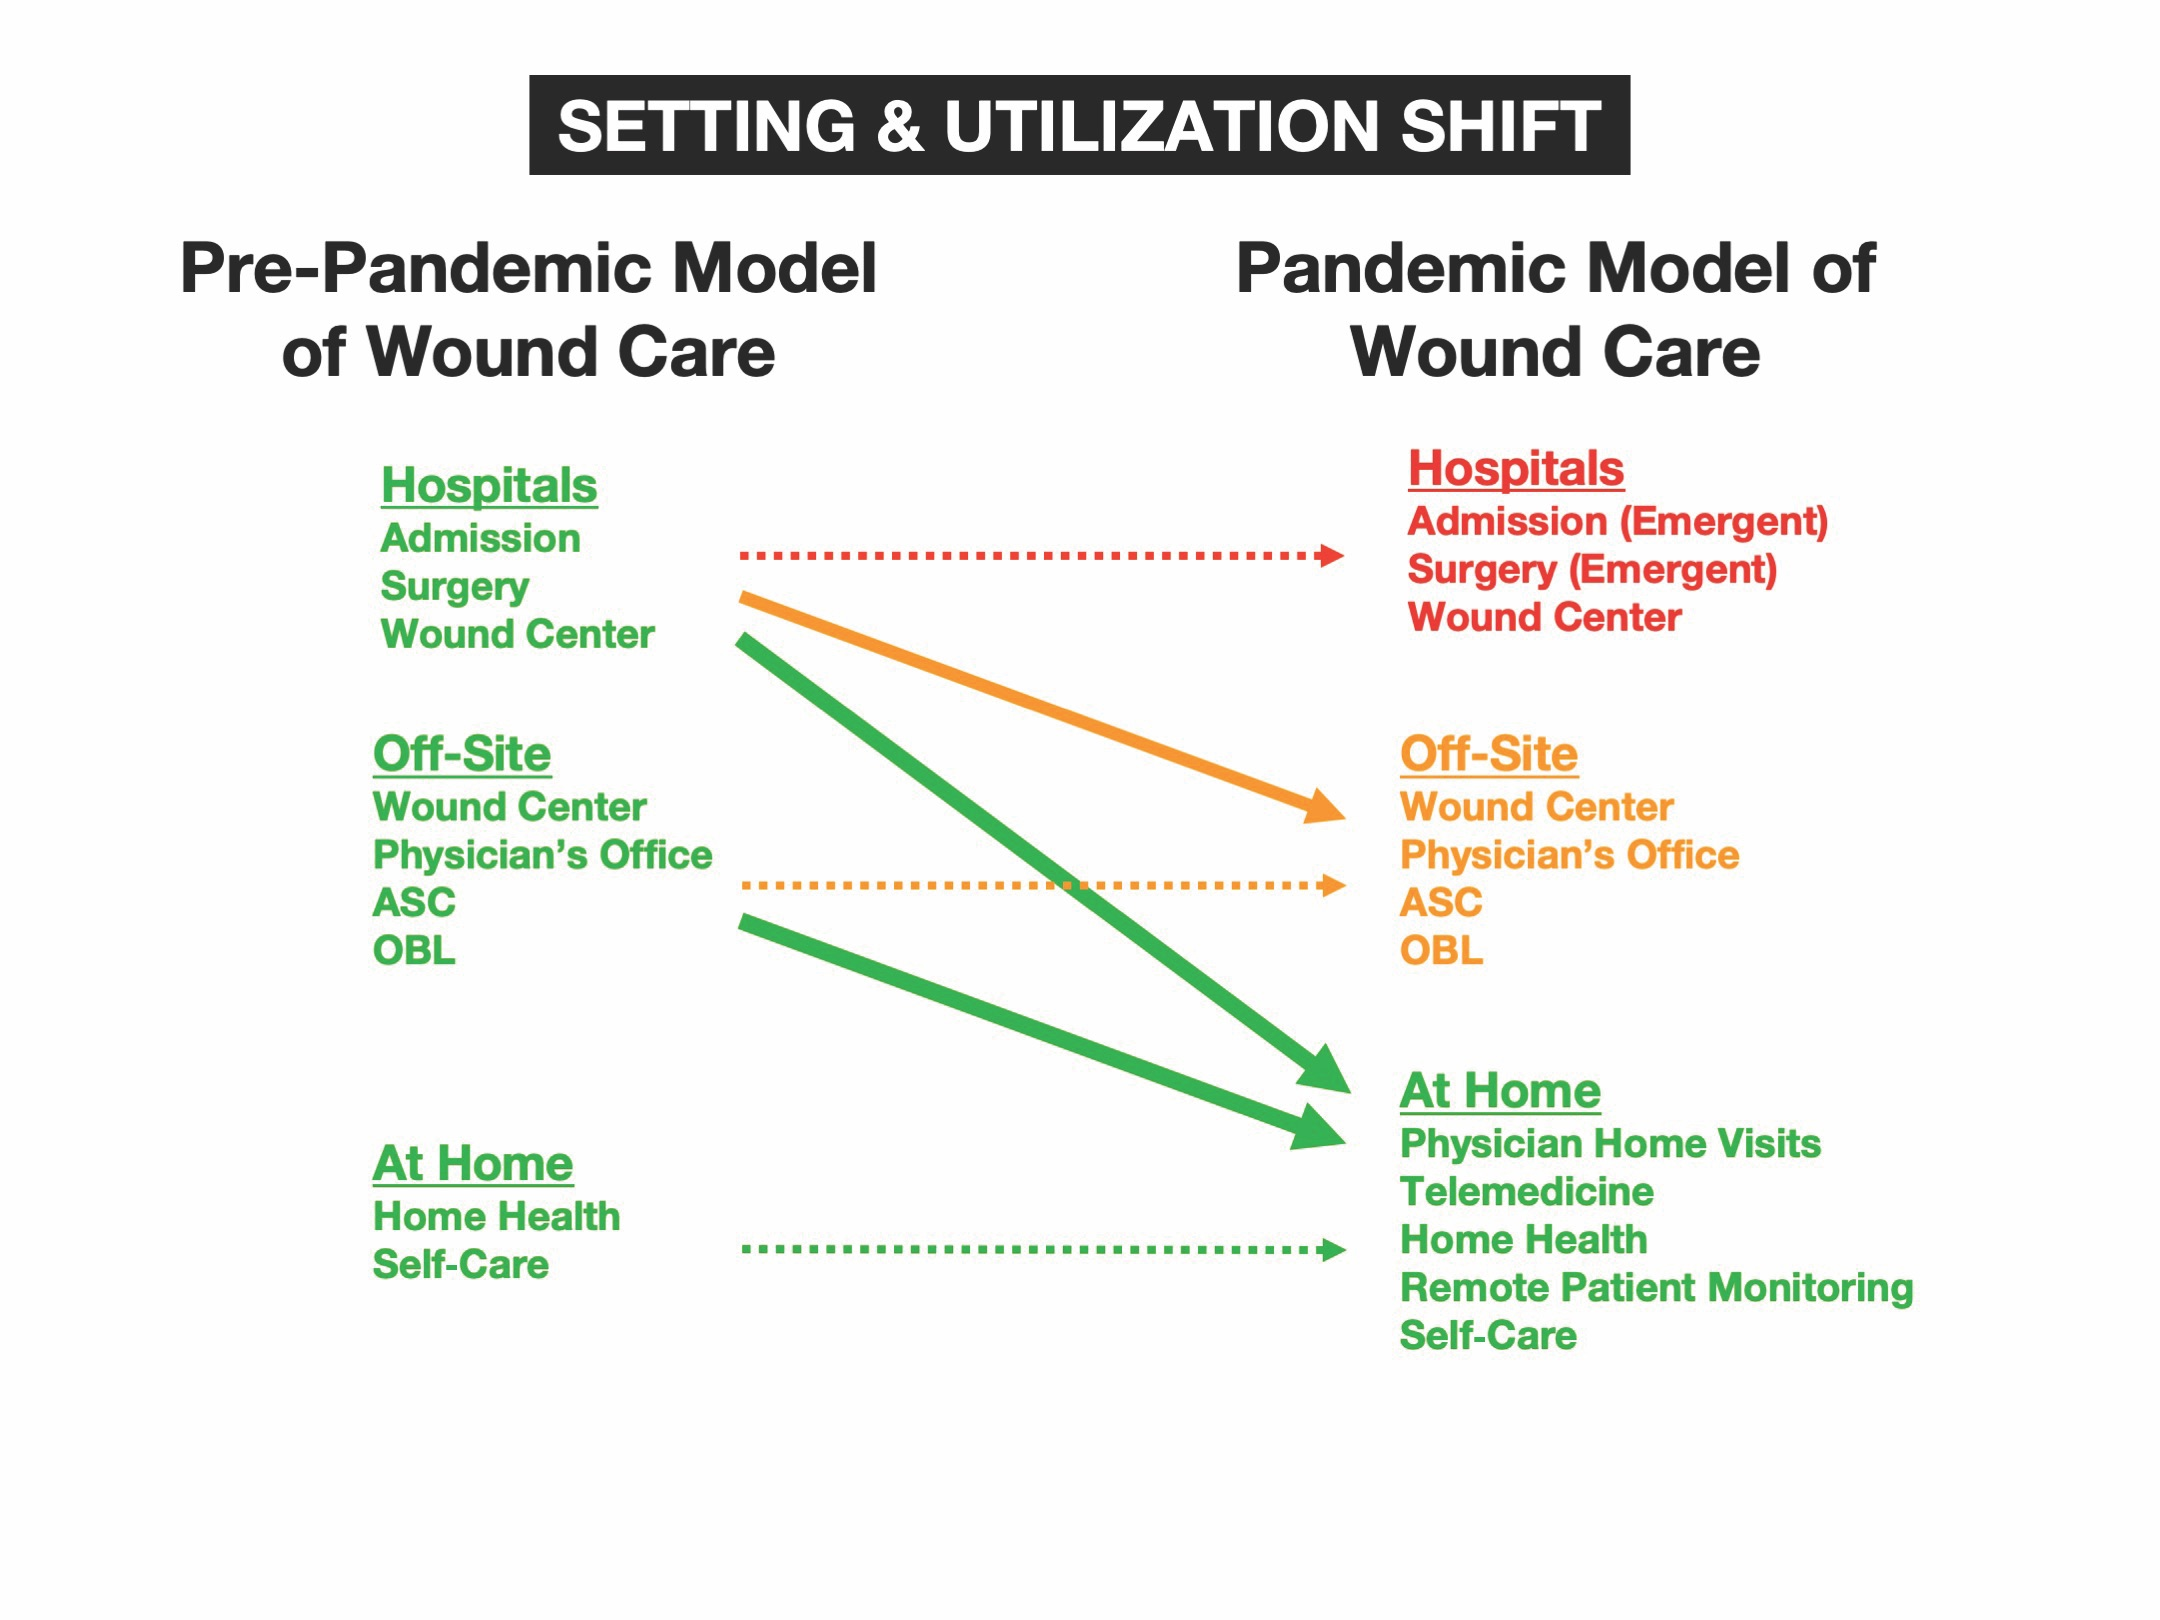 Figure 1. The shift in the site and utilization of wound care. ASC: ambulatory surgery center; OBL: office-based laboratory. Used with permission; Wounds 2020.